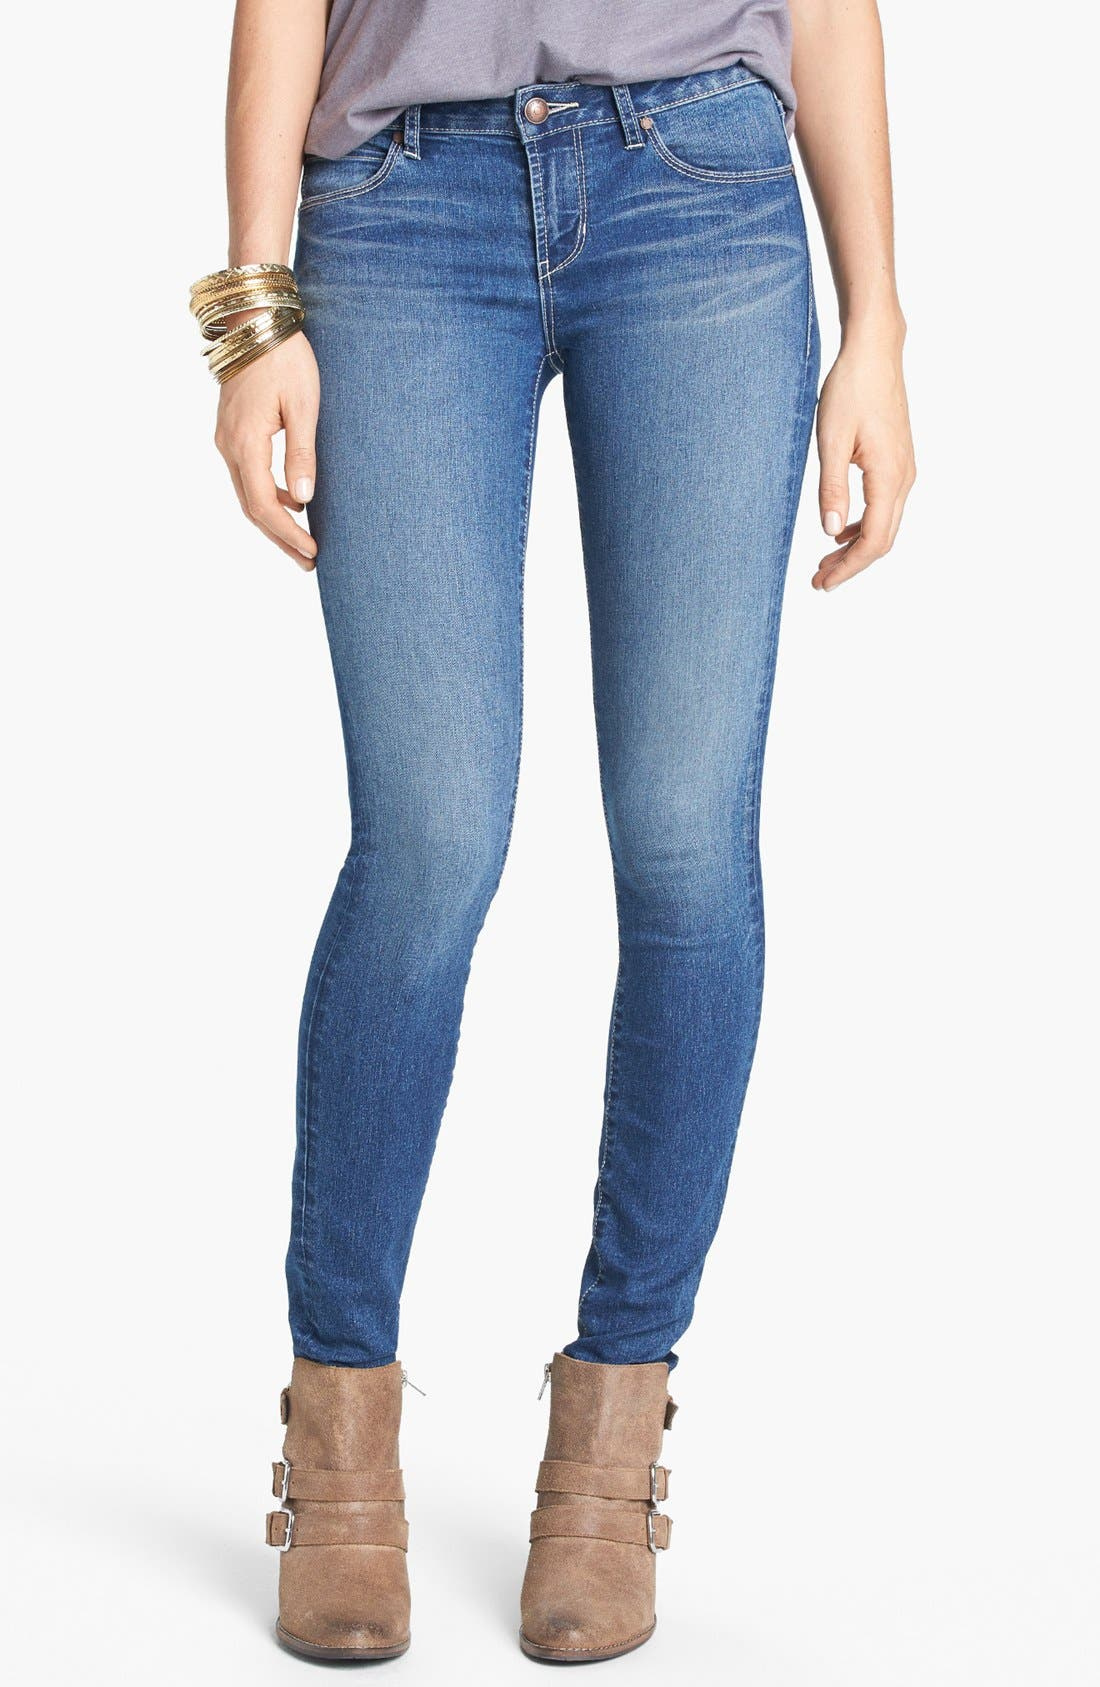 Alternate Image 1 Selected - Articles of Society 'Mya Vintage' Skinny Jeans (Medium) (Juniors)